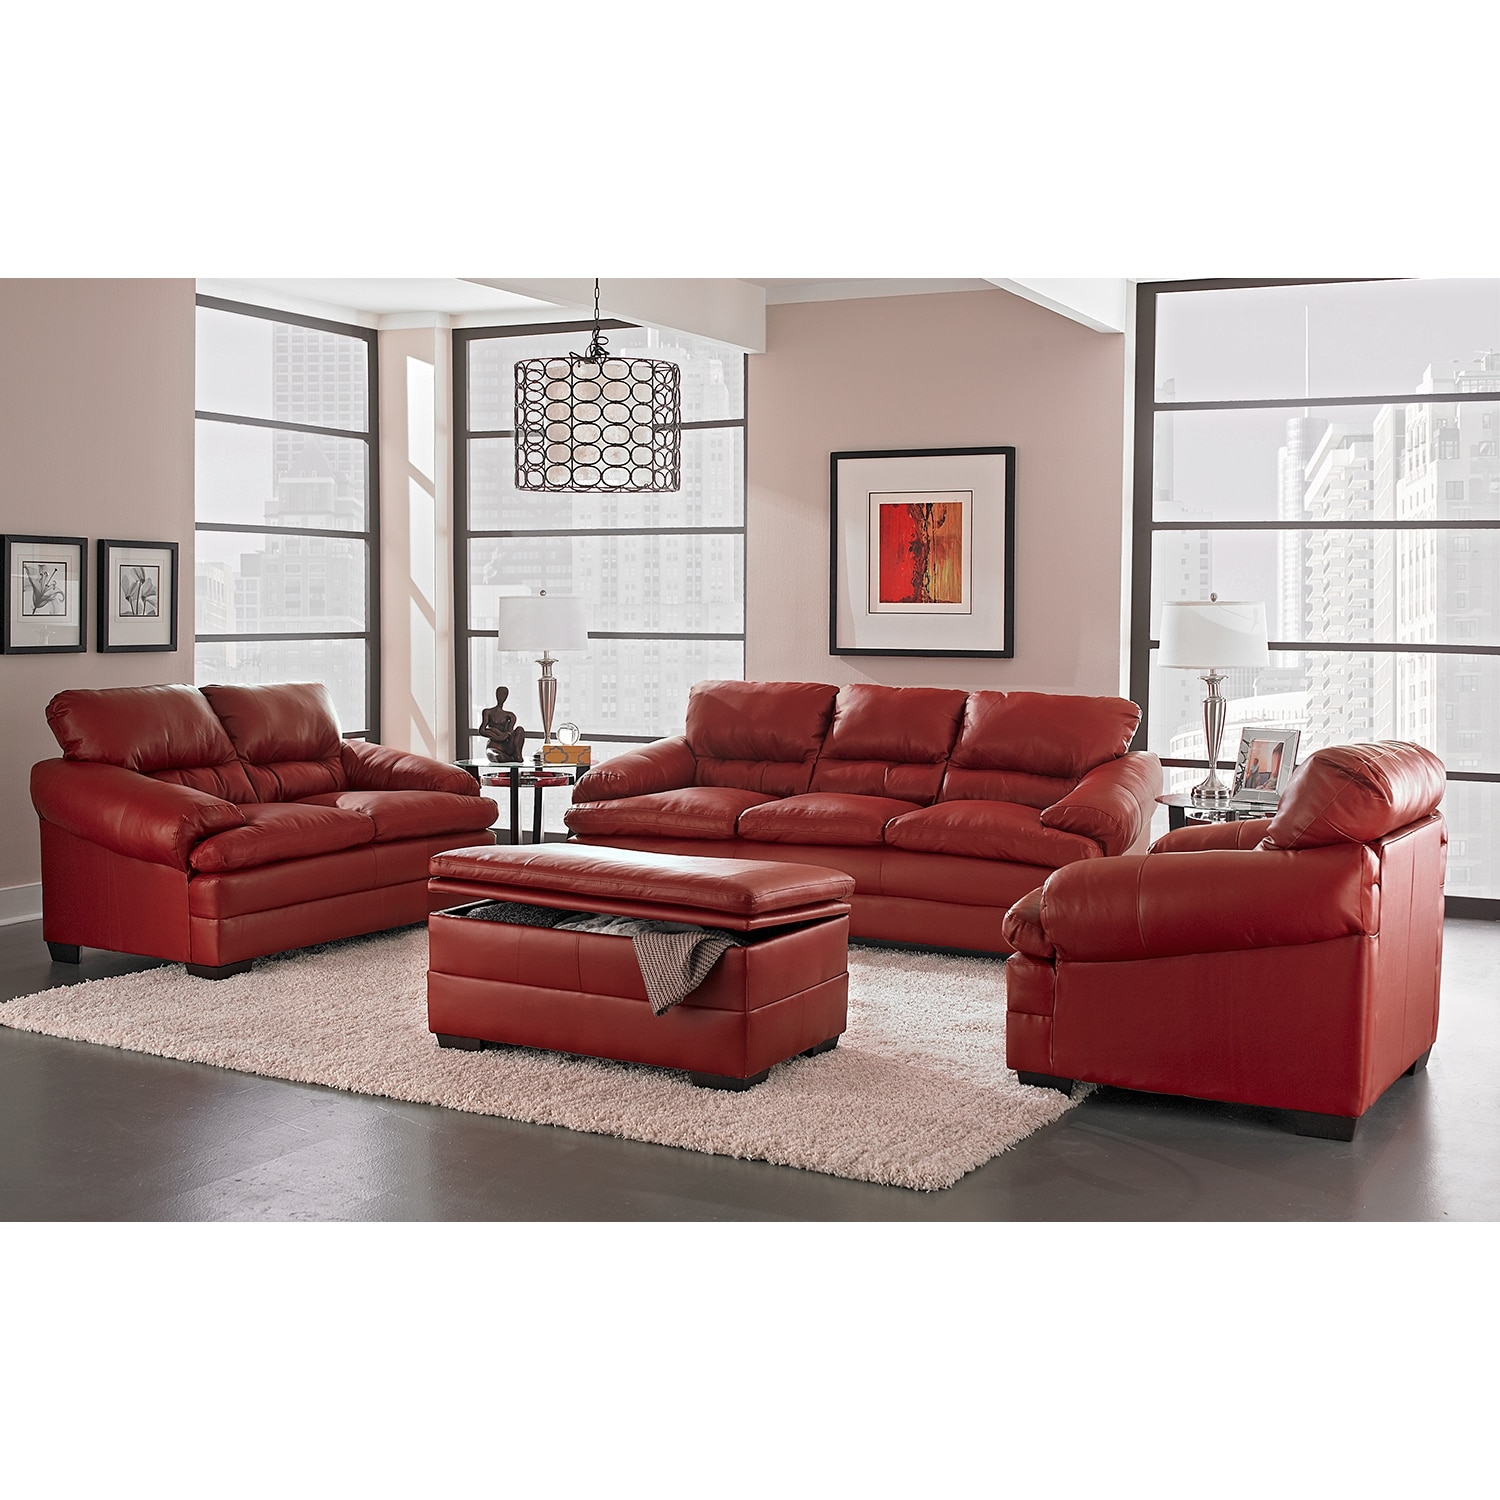 value city furniture leather living room sets modern house